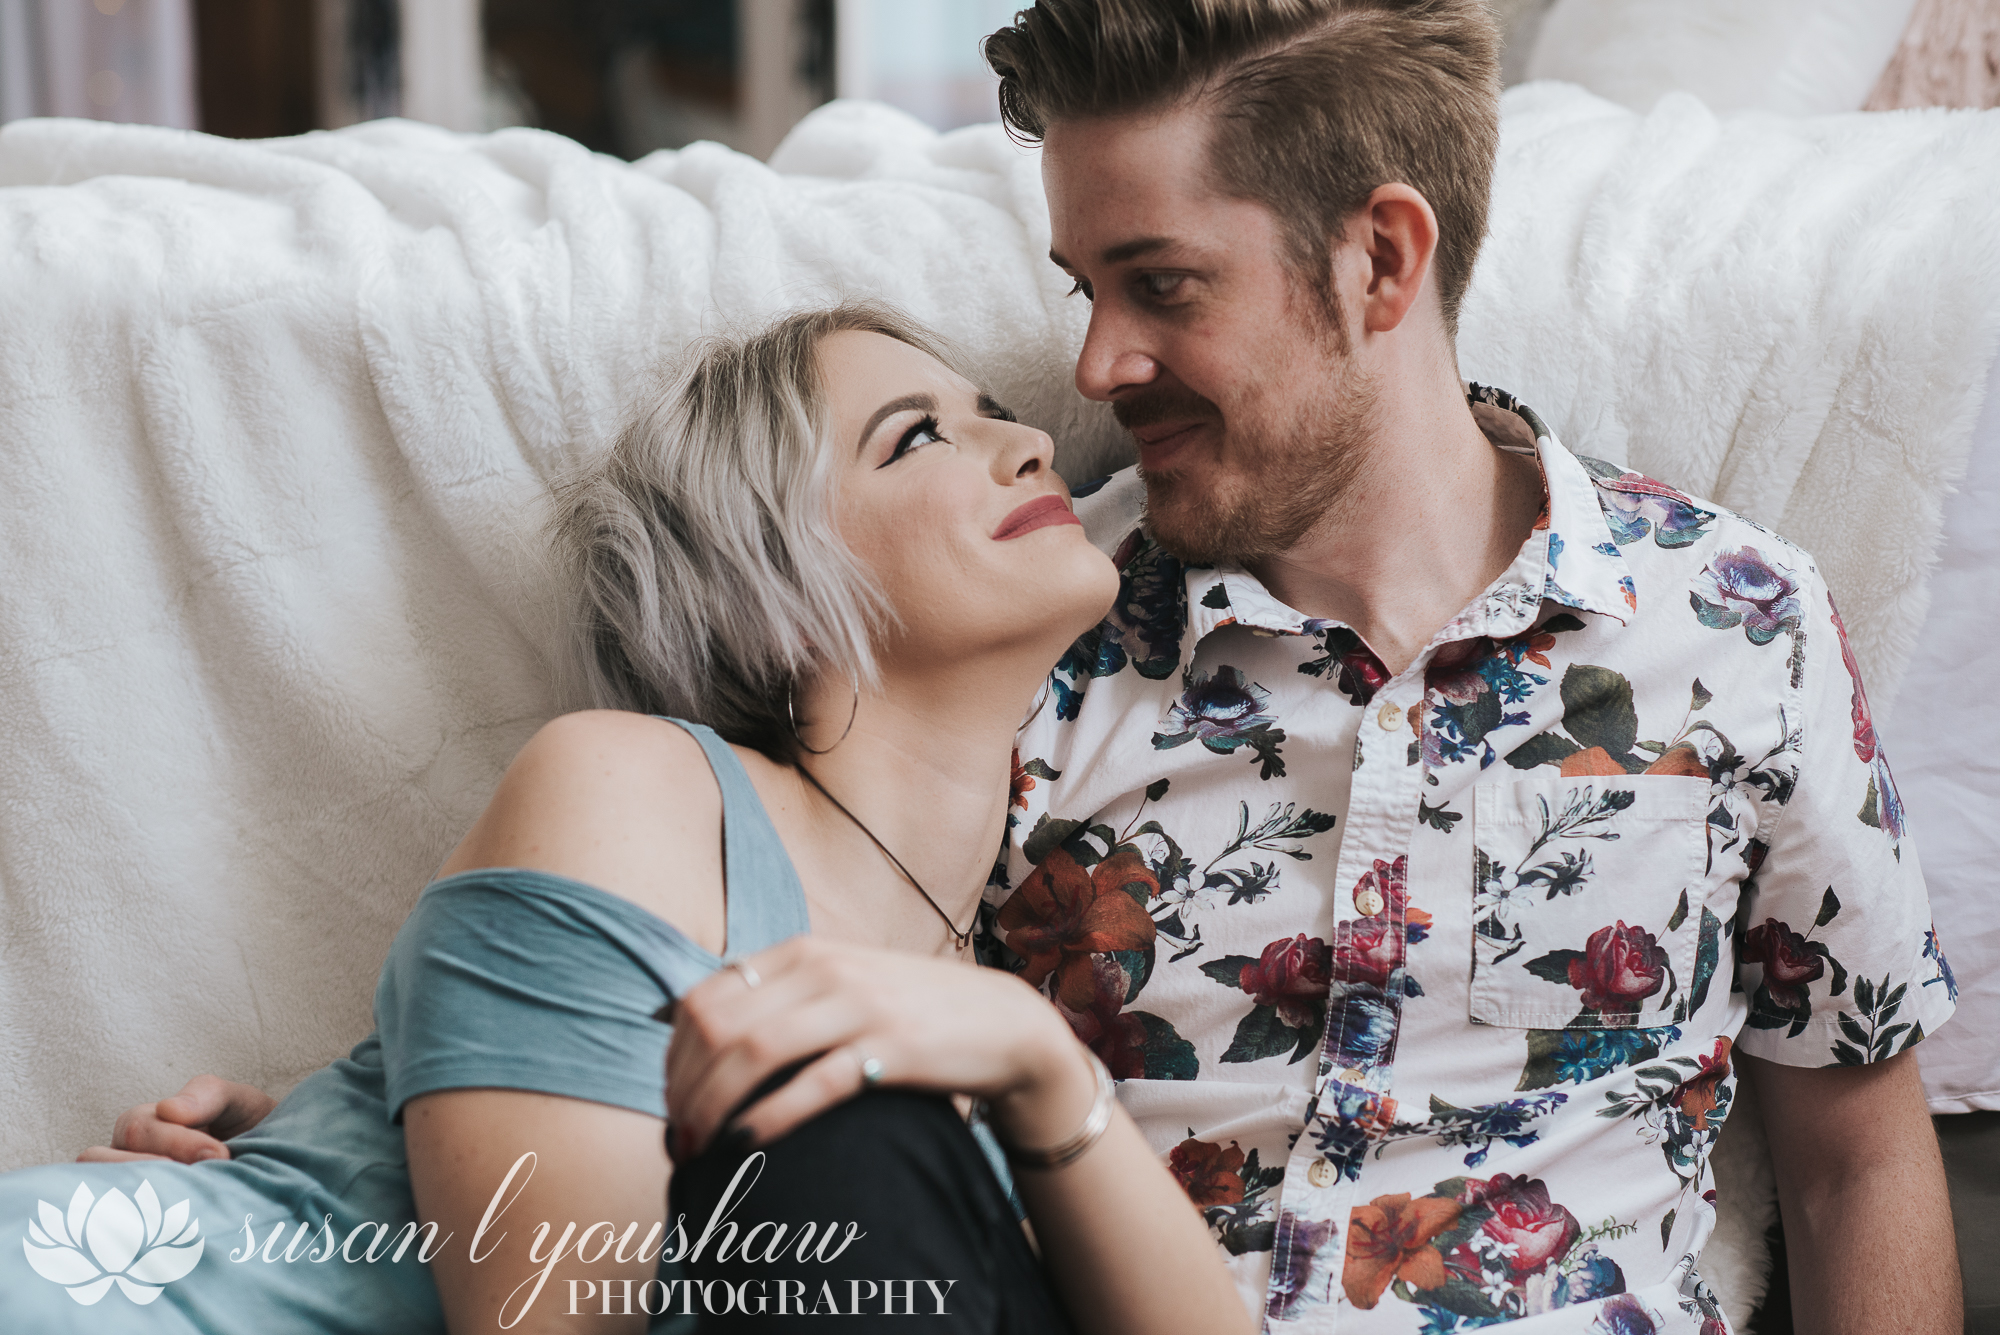 BLOG Love Mini Sessions 06-28-2018 SLY Photography LLC-19.jpg